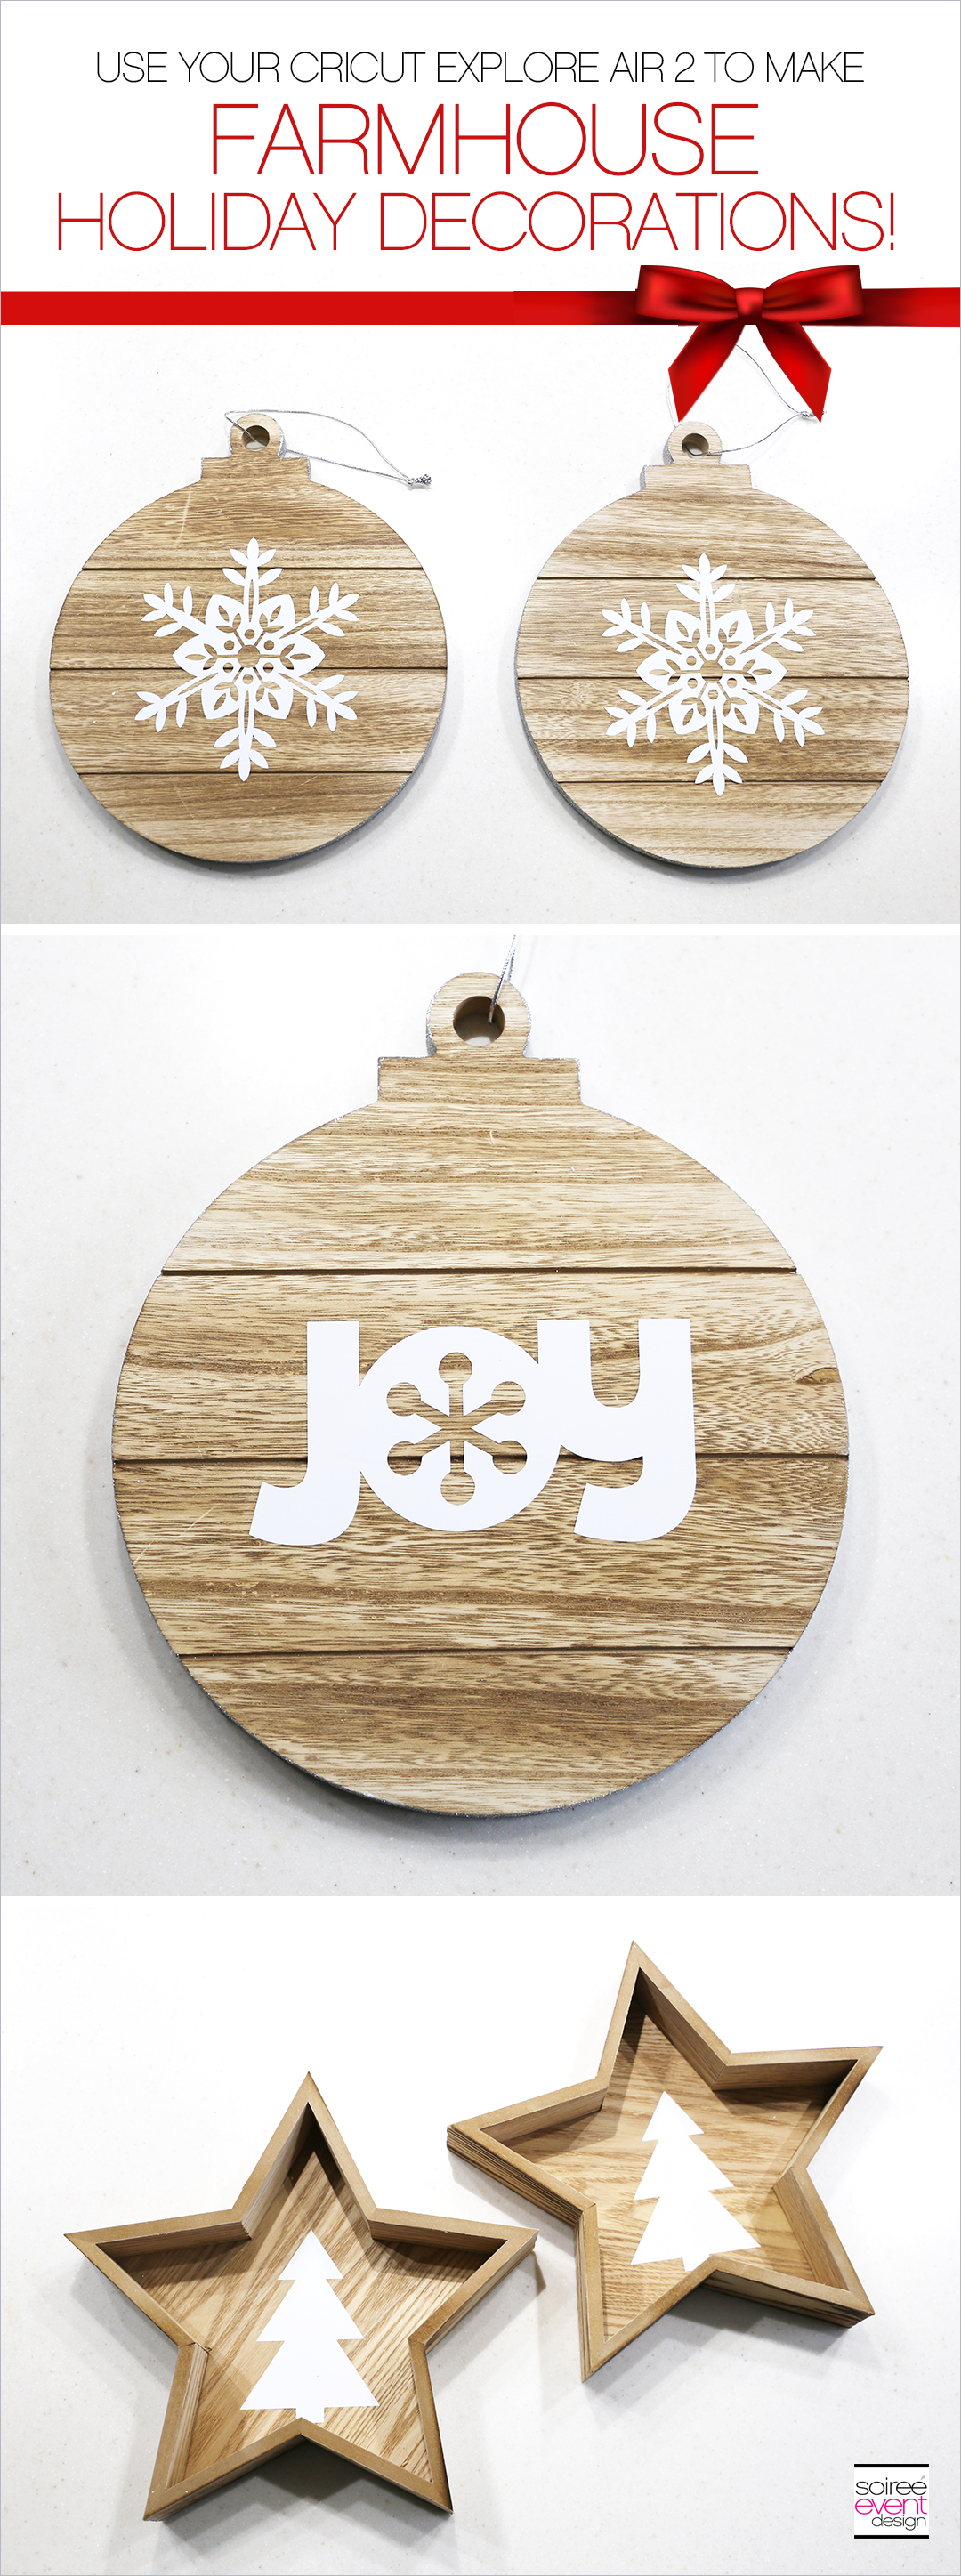 DIY Cricut Farmhouse Holiday Decorations